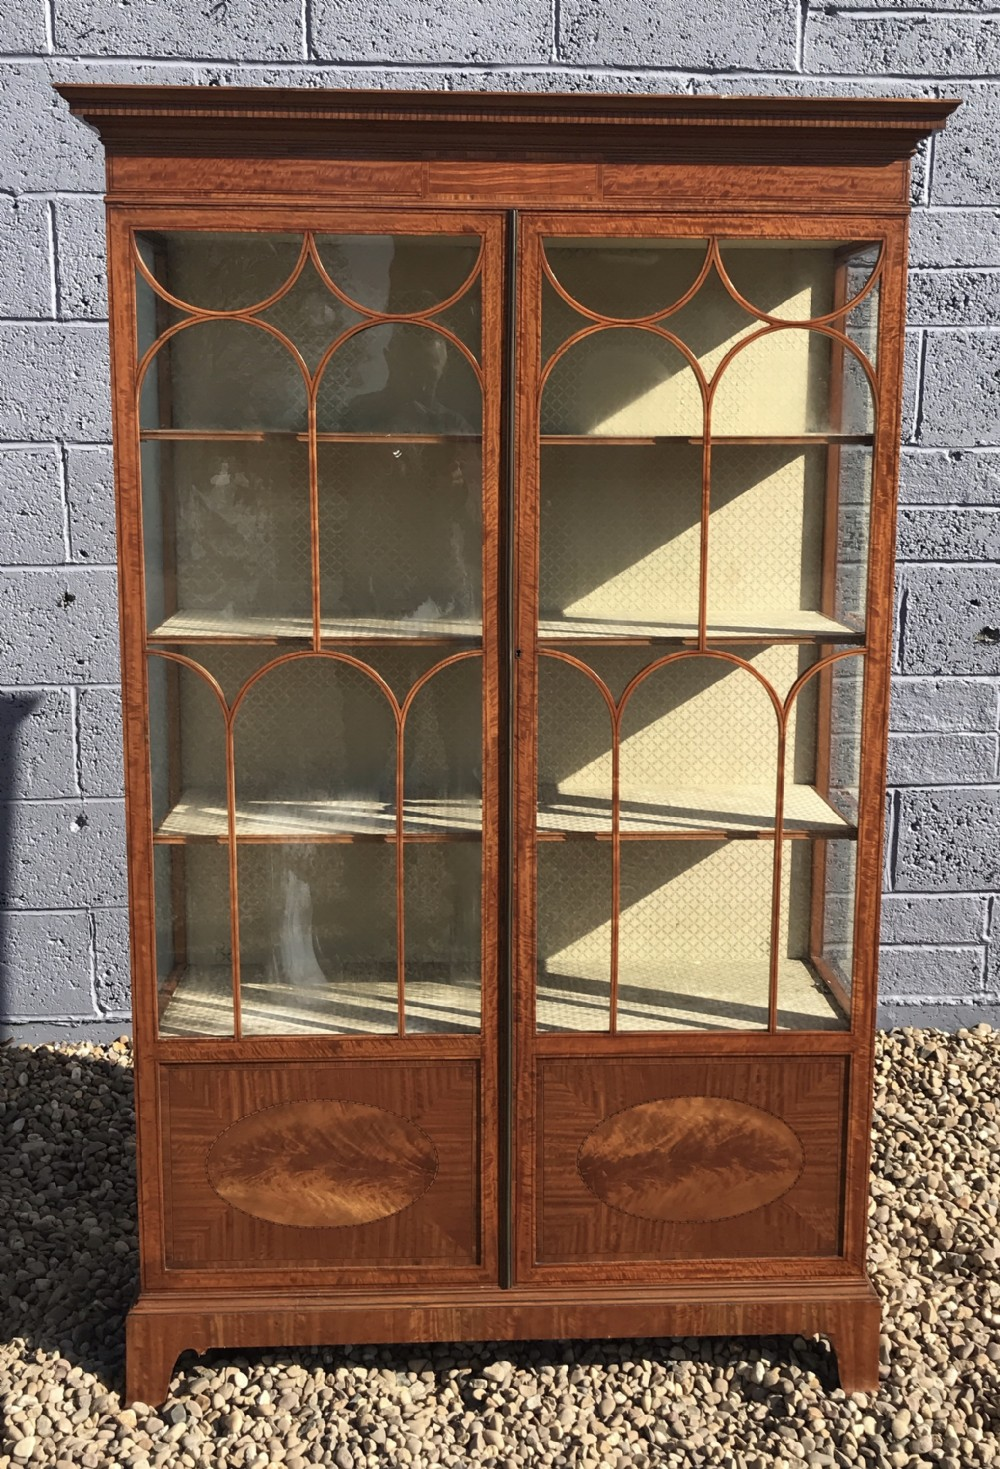 excellent qualitycondition edwardian inlaid satinwood display cabinet